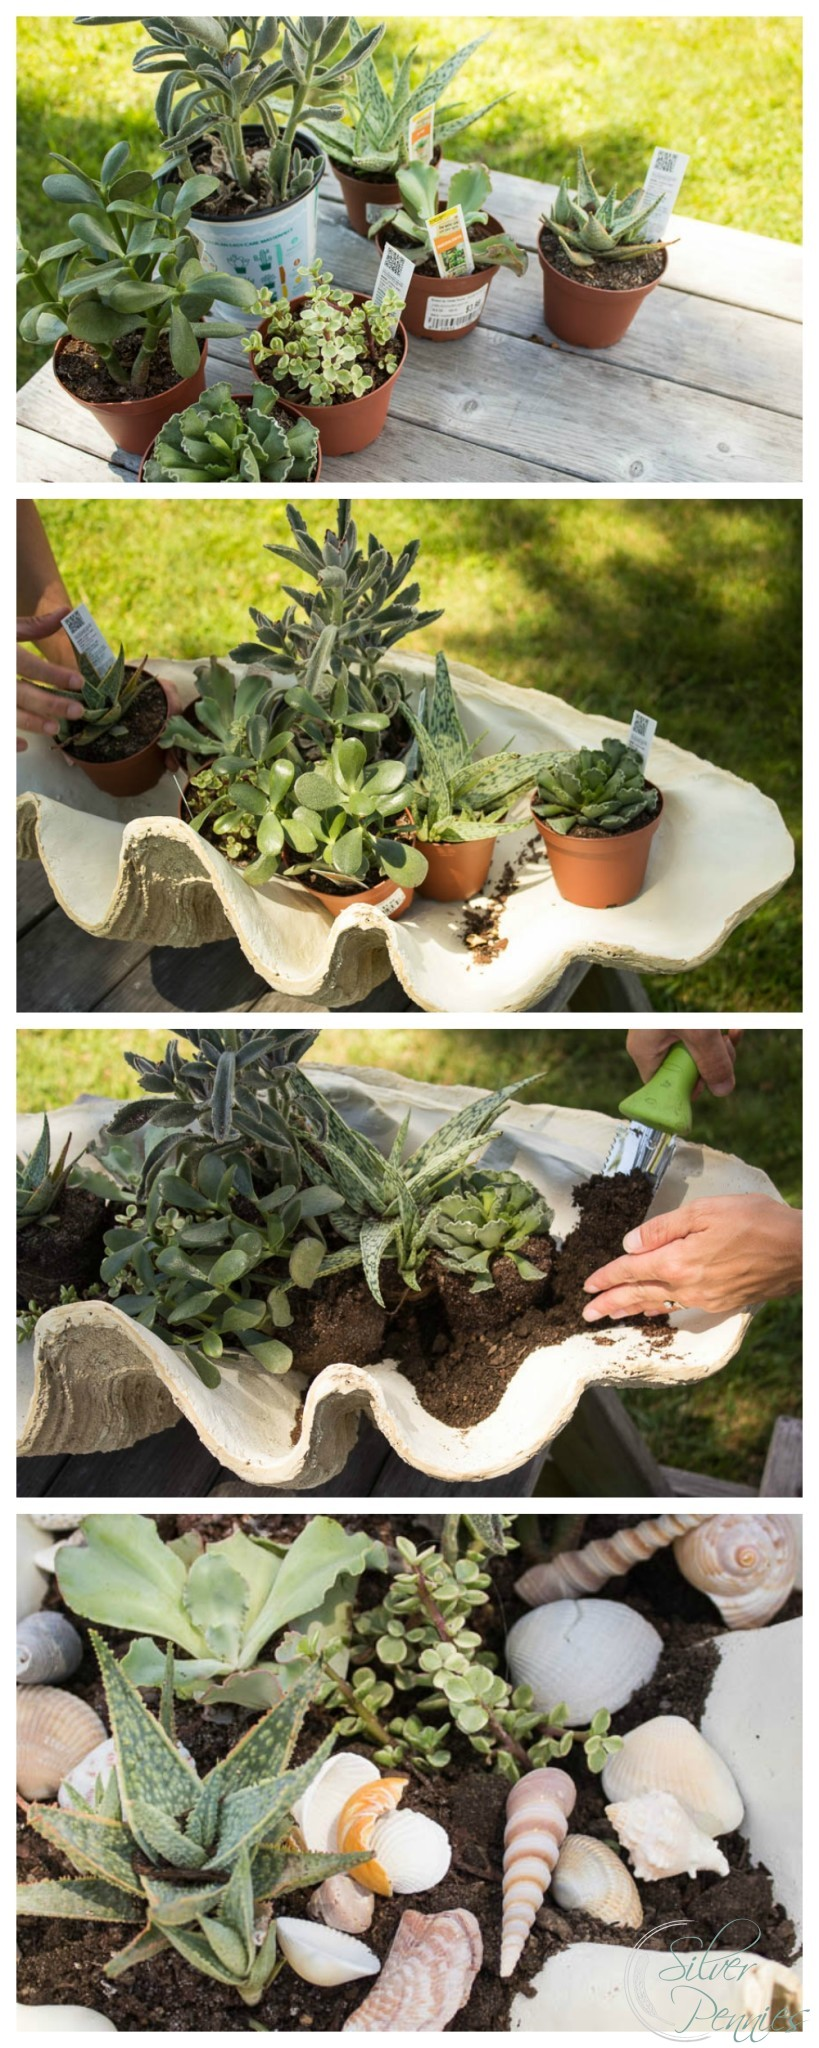 Steps for Creating a DIY Succulent Planter